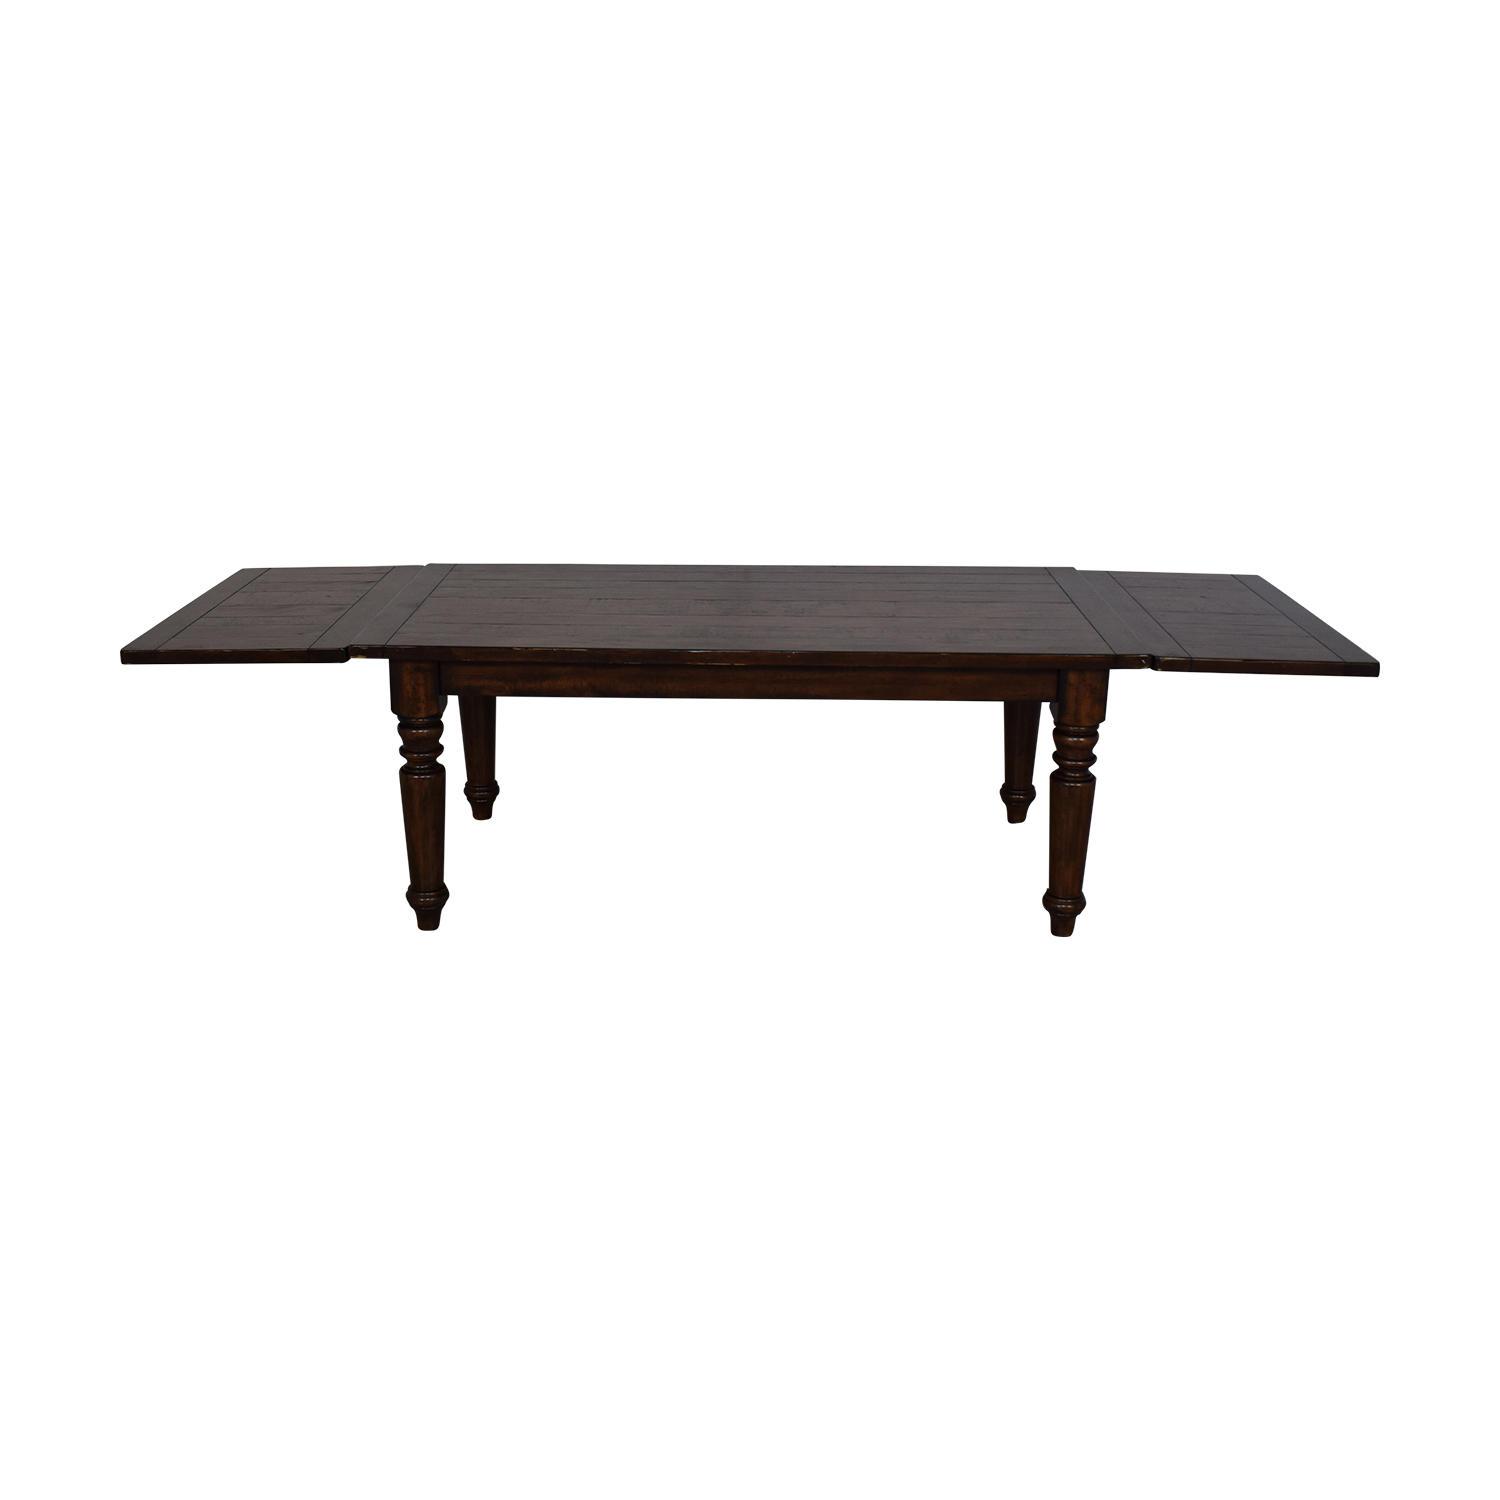 Pottery Barn Pottery Barn Sumner Extending Dining Table discount